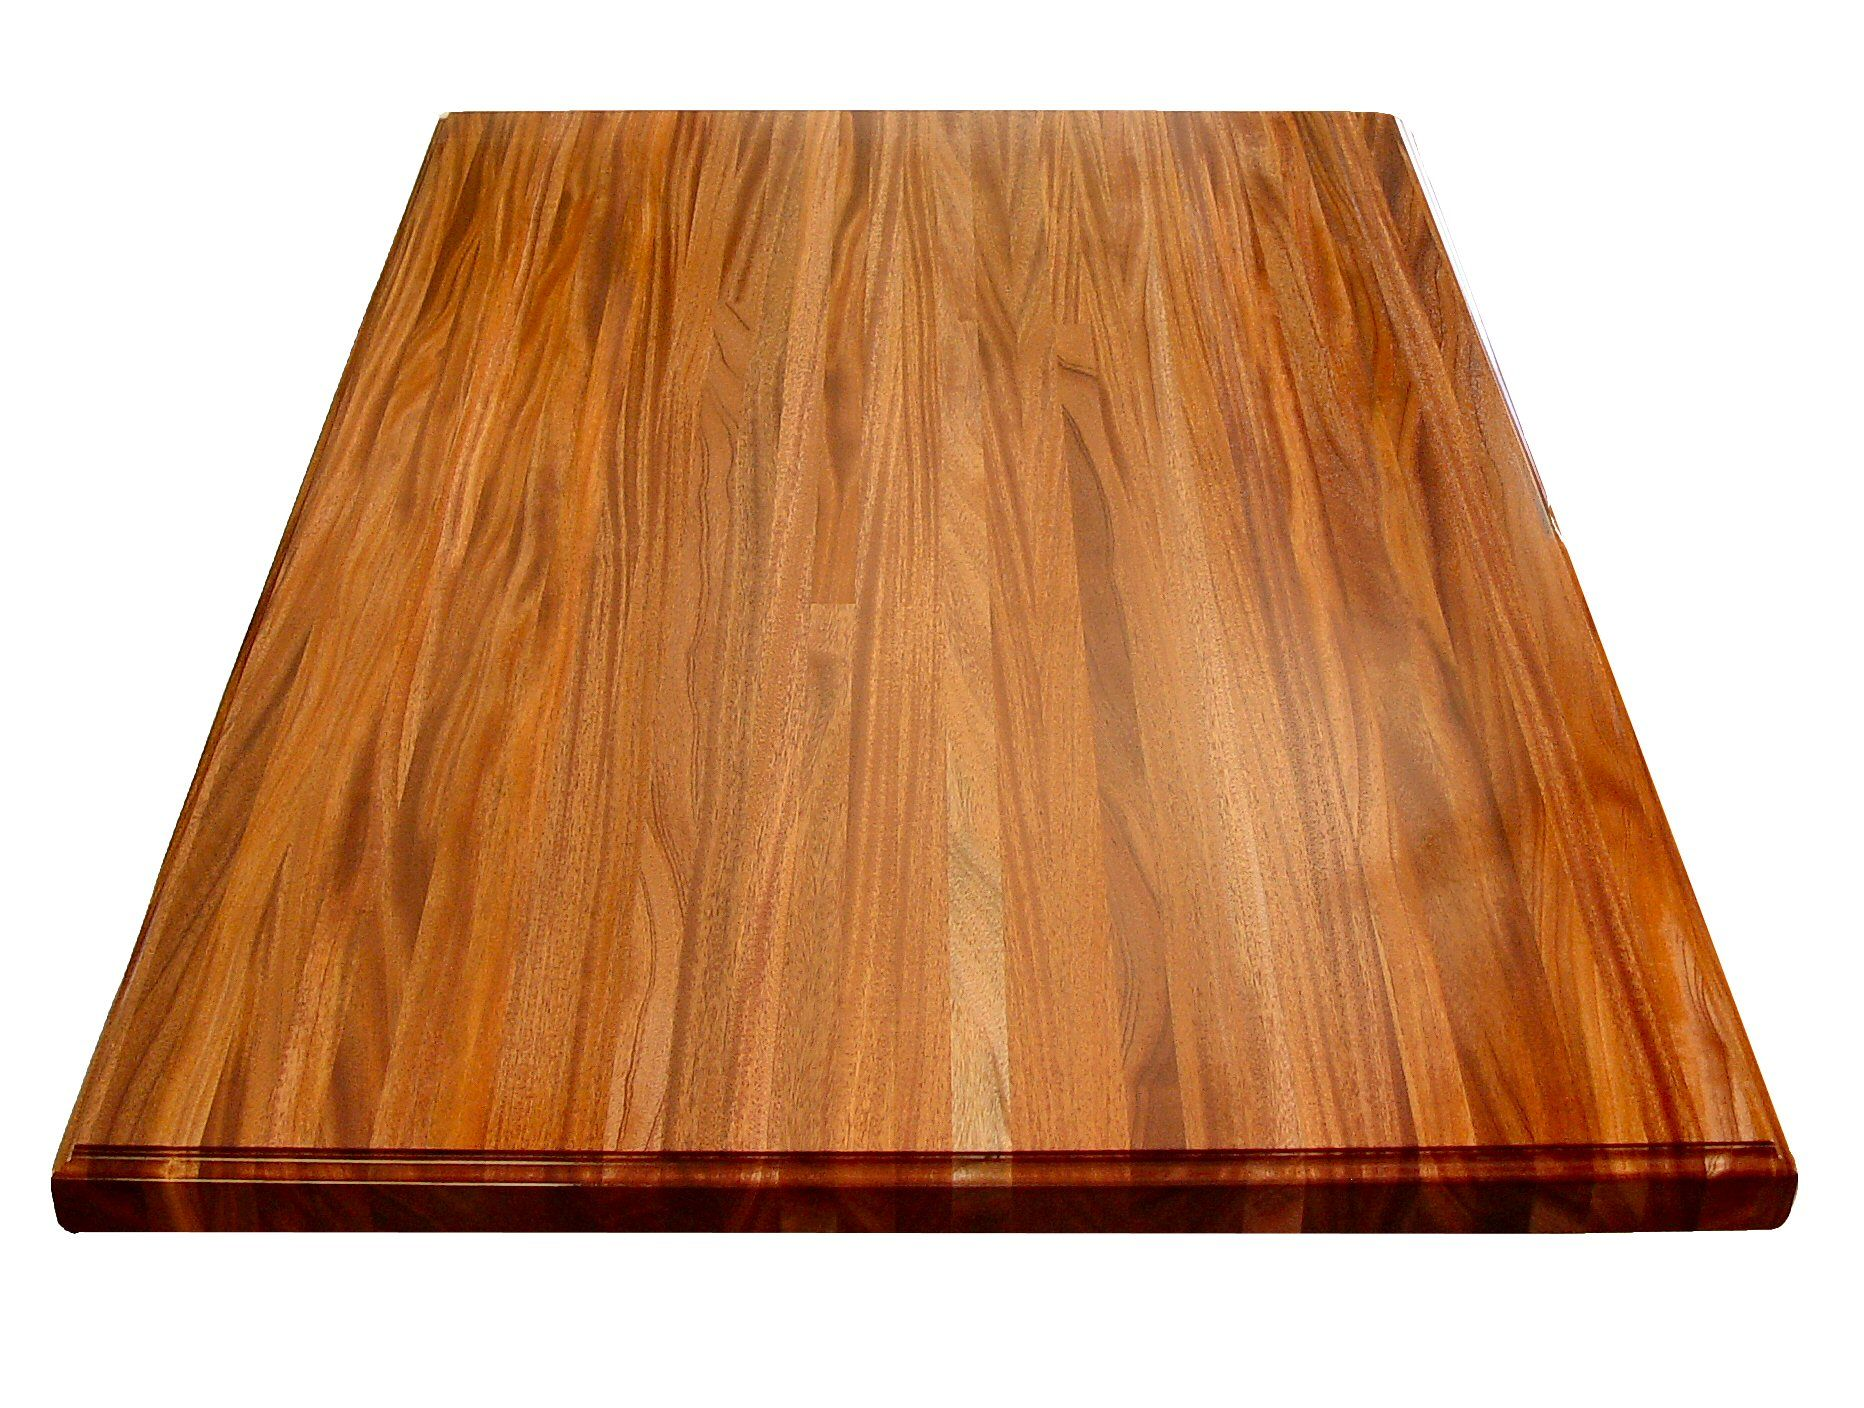 African Mahogany Wood Countertop Photo Gallery, by DeVos